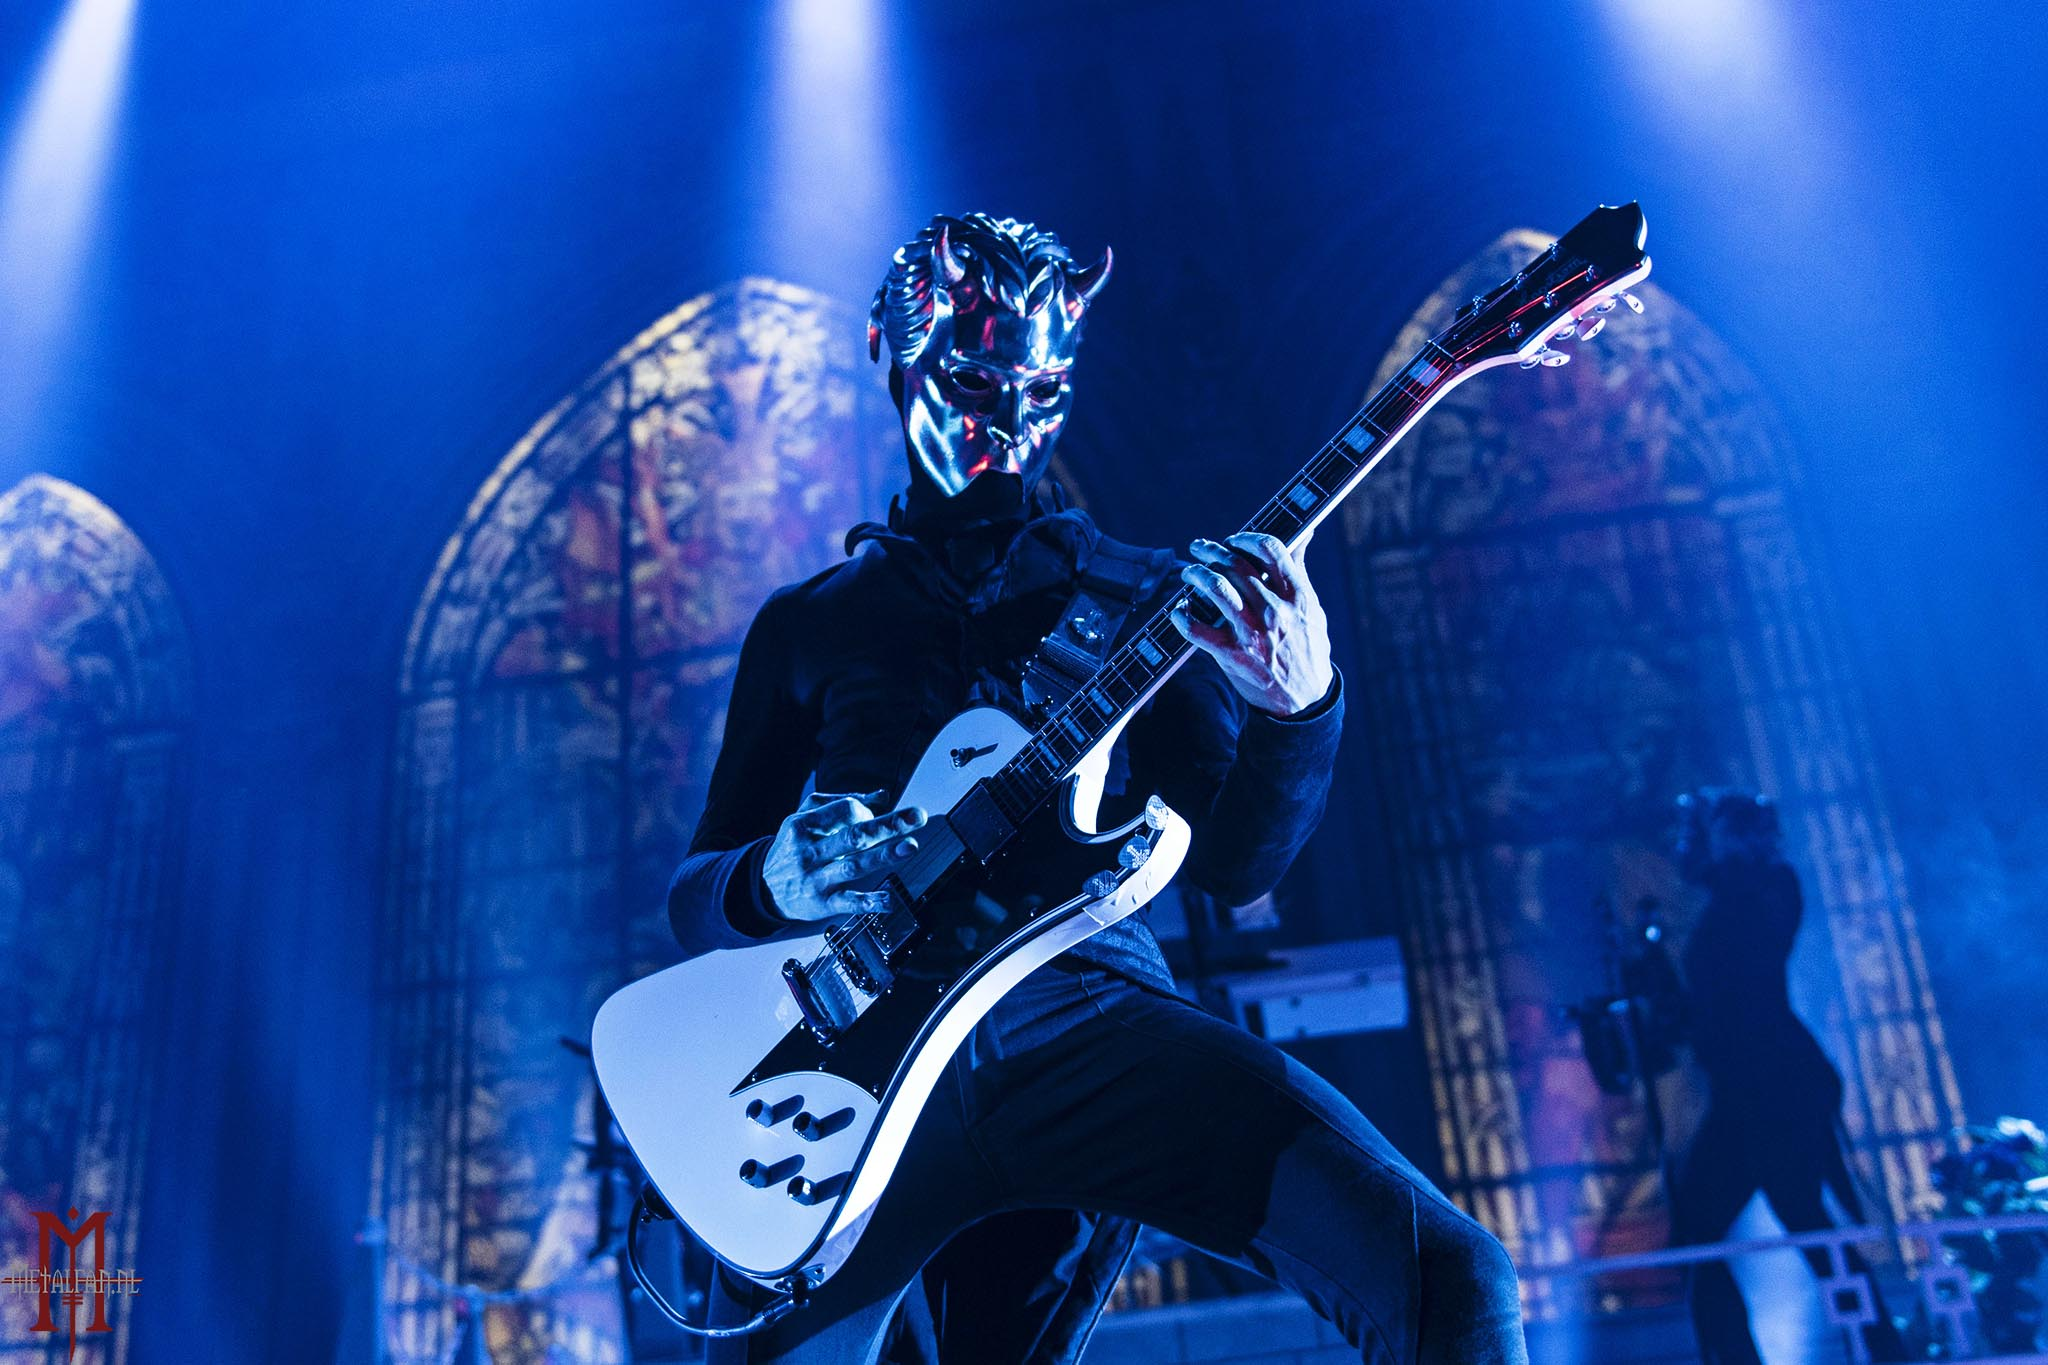 Ghost @ AFAS Live, Amsterdam, 5-2-2019